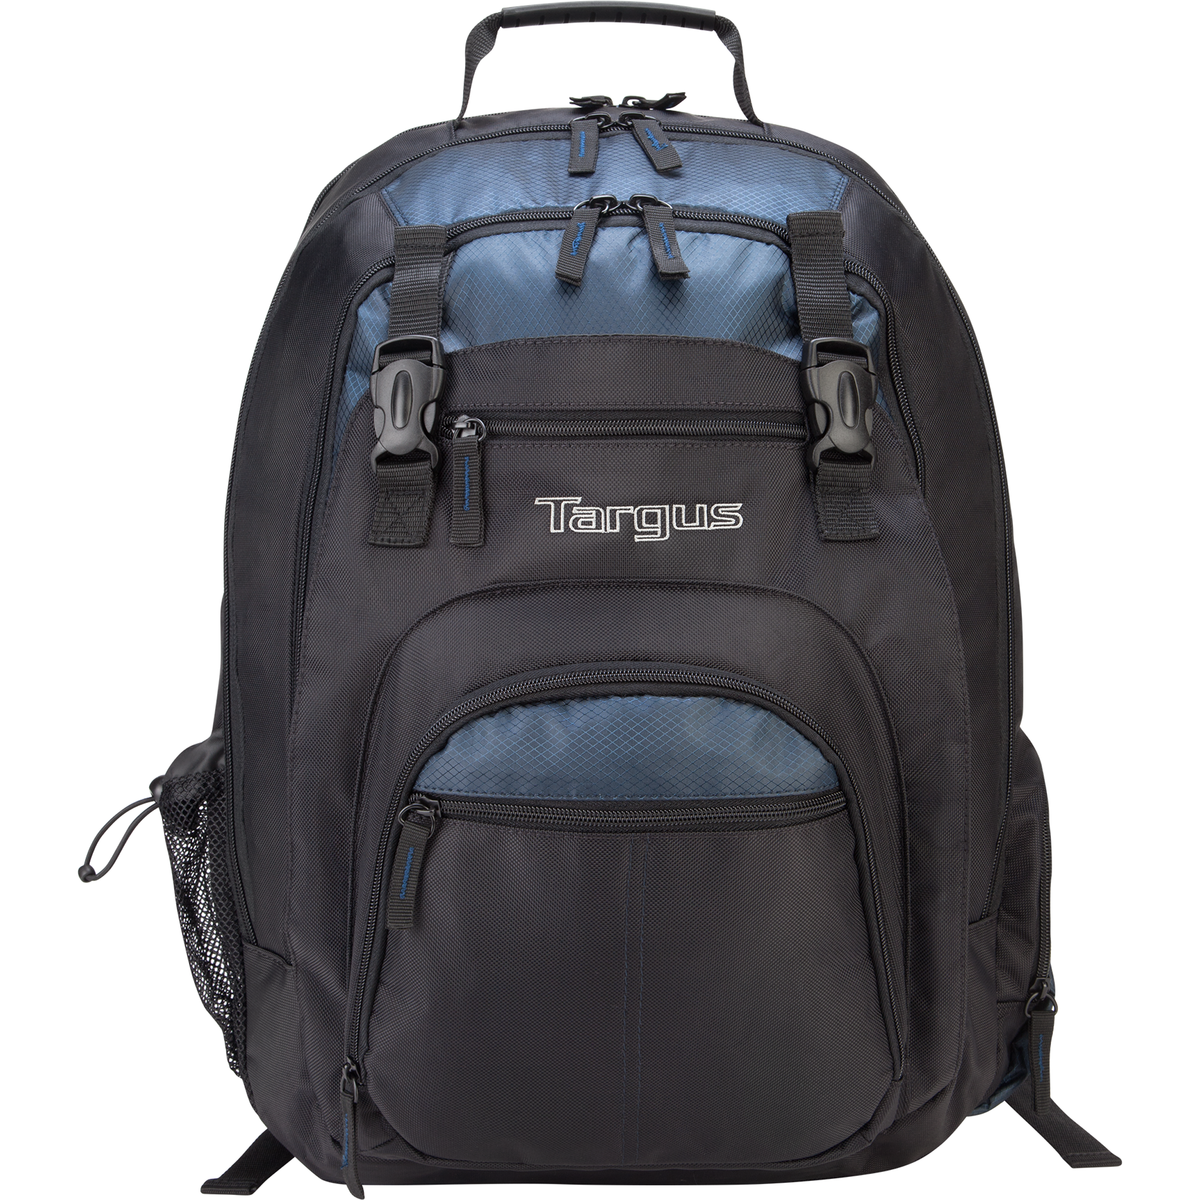 17 Xl Laptop Backpack Txl617 Black Blue Backpacks